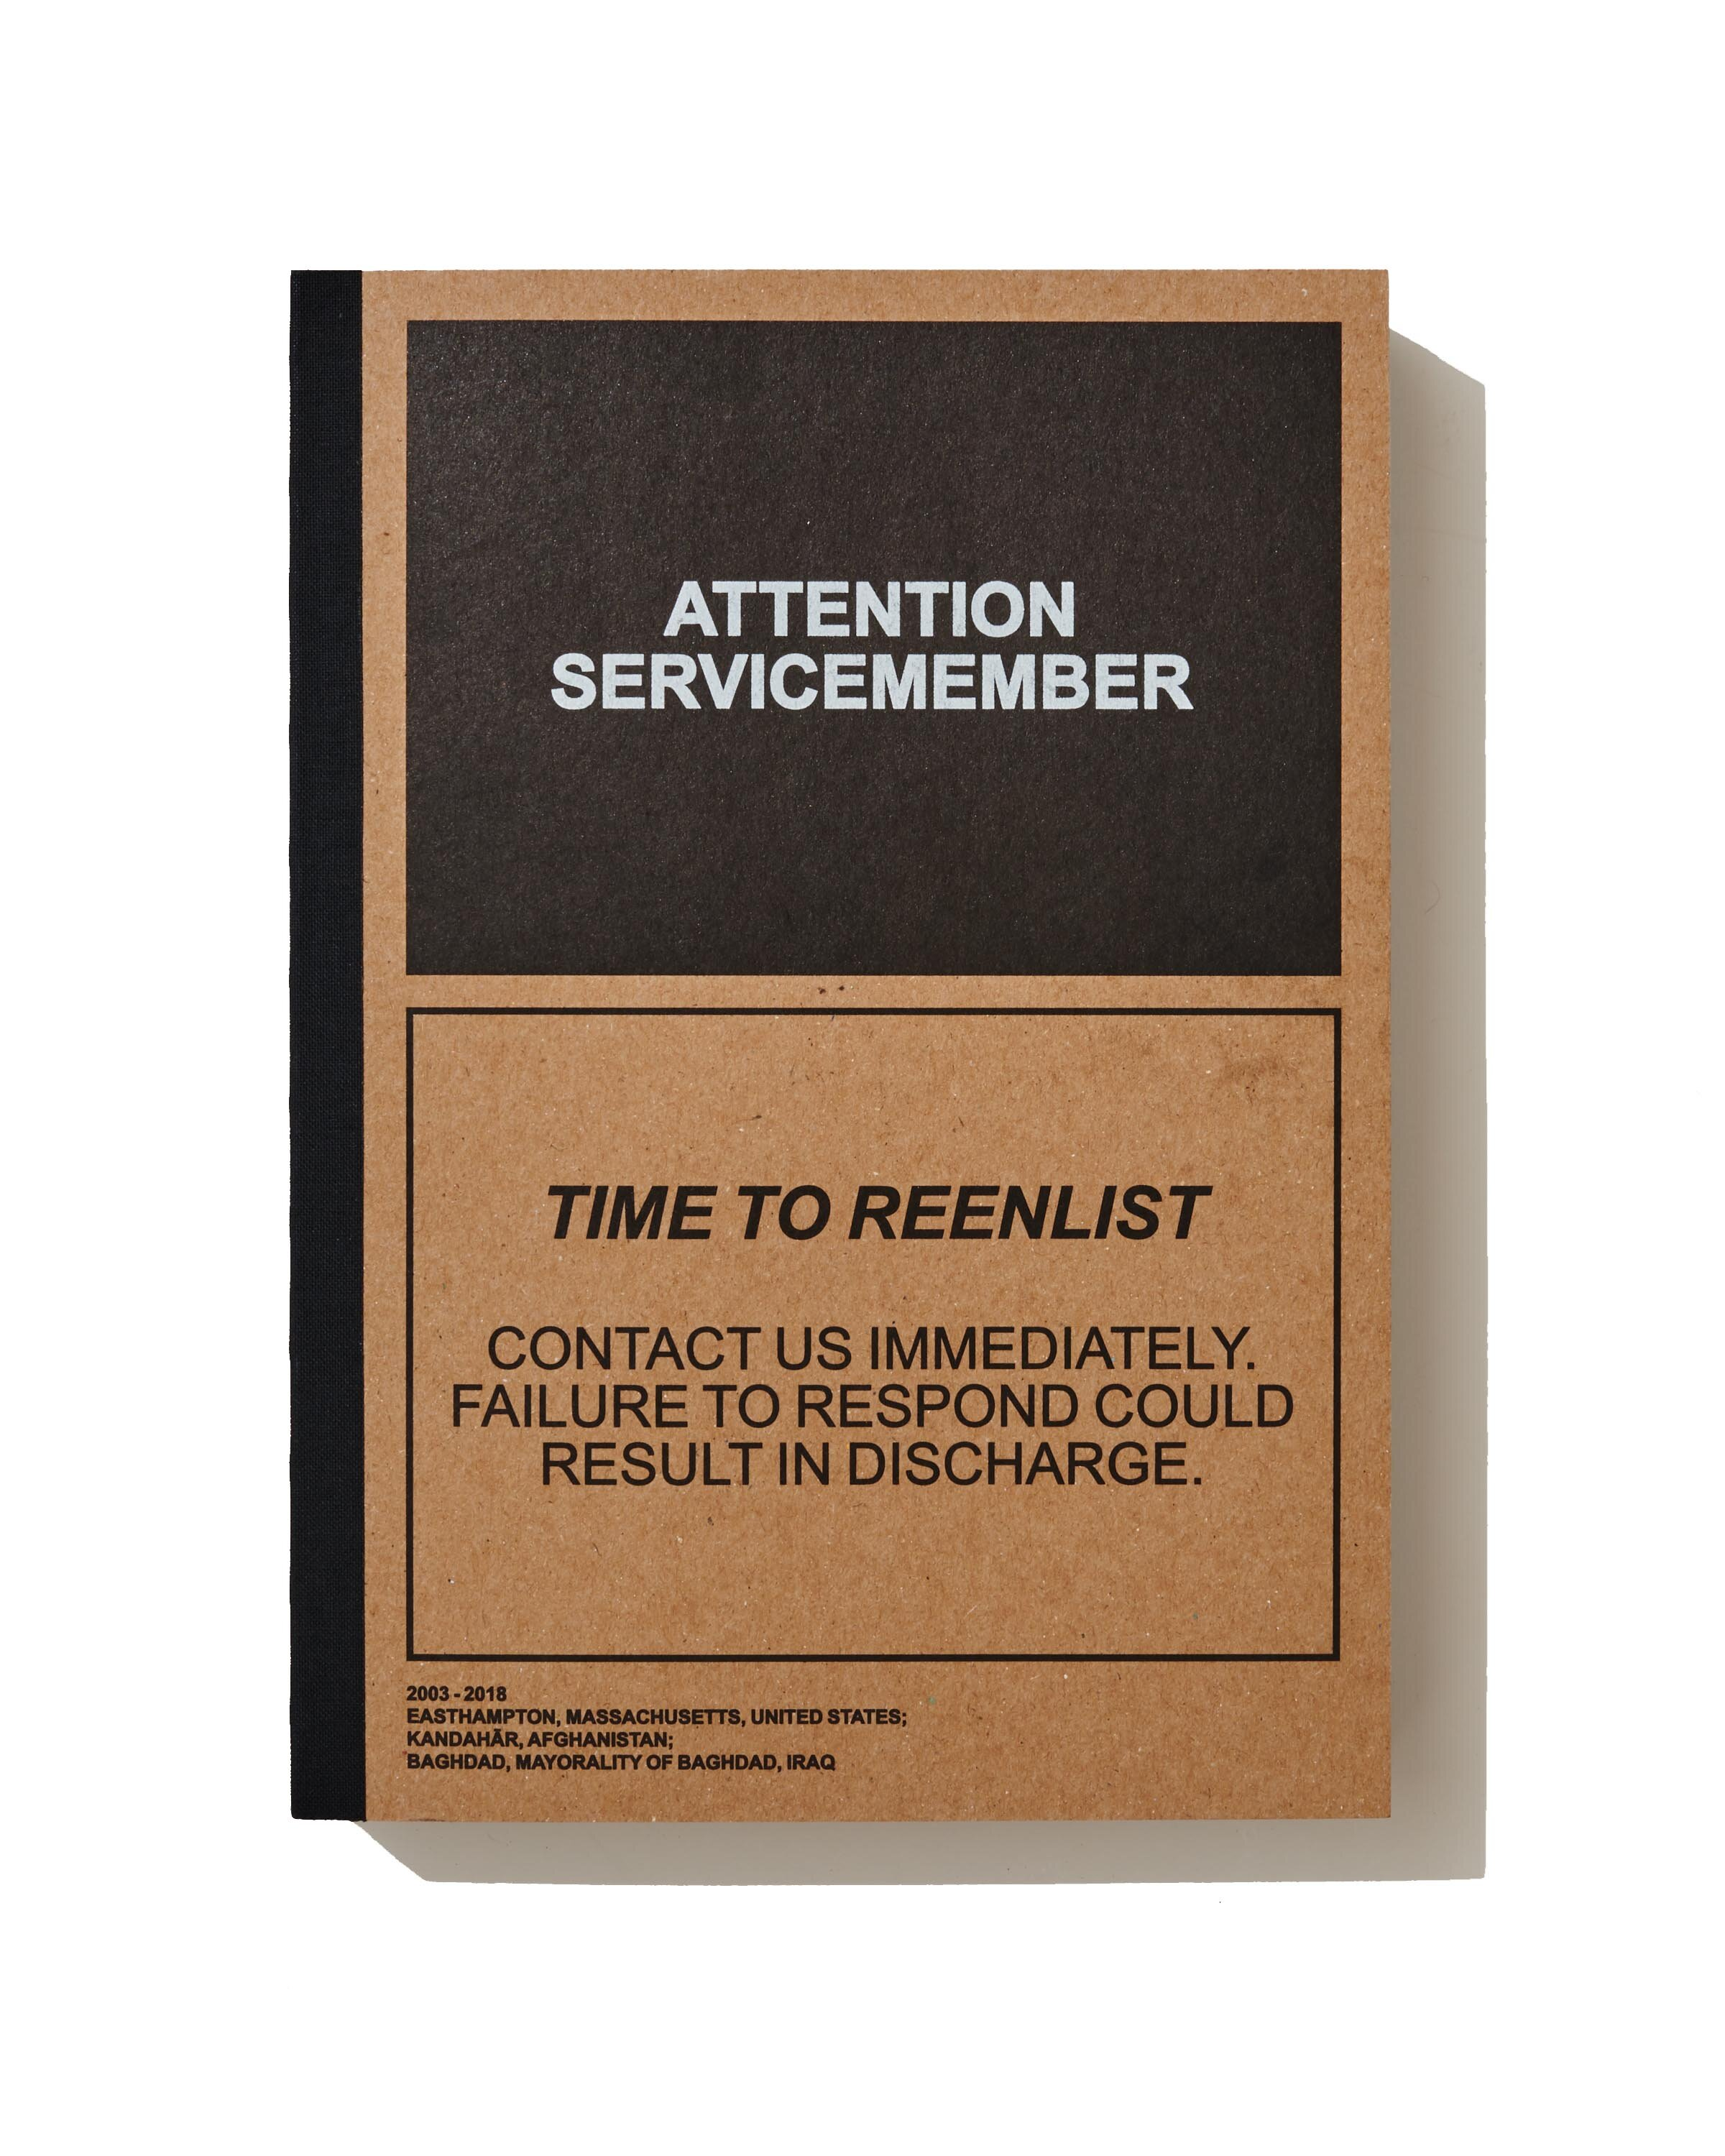 attention servicemember - by Ben BrodyShortlisted for the Aperture - Paris Photo First Book Award